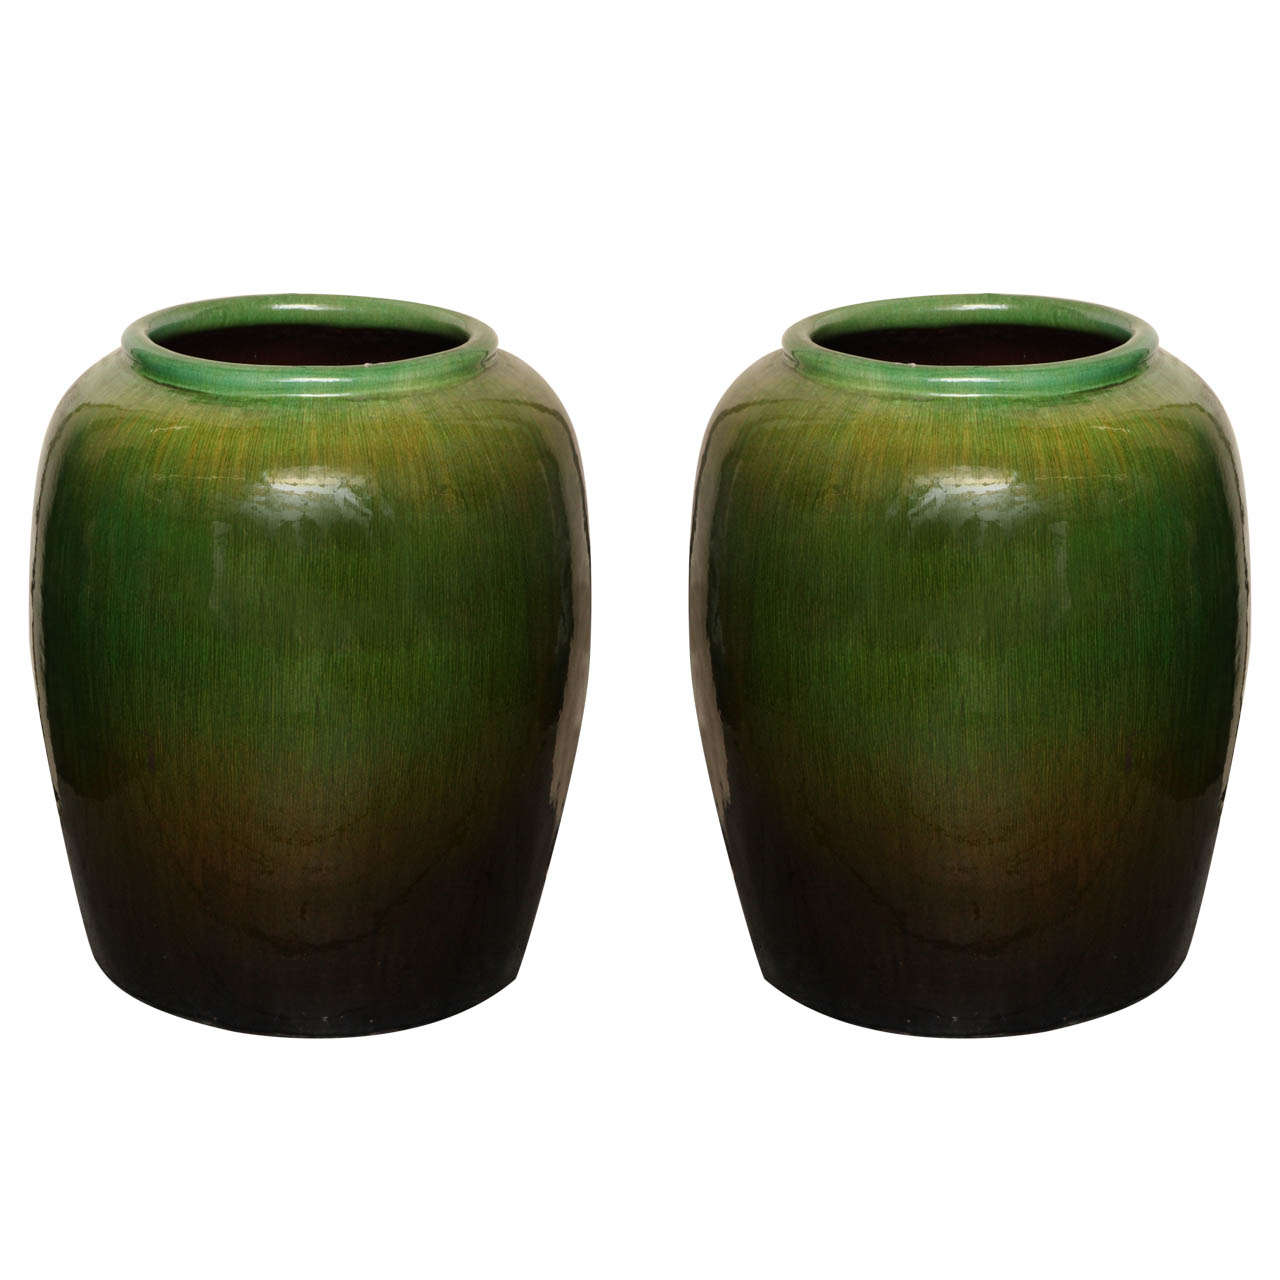 Vintage Tall Round Green Glaze Ceramic Water Jar from China